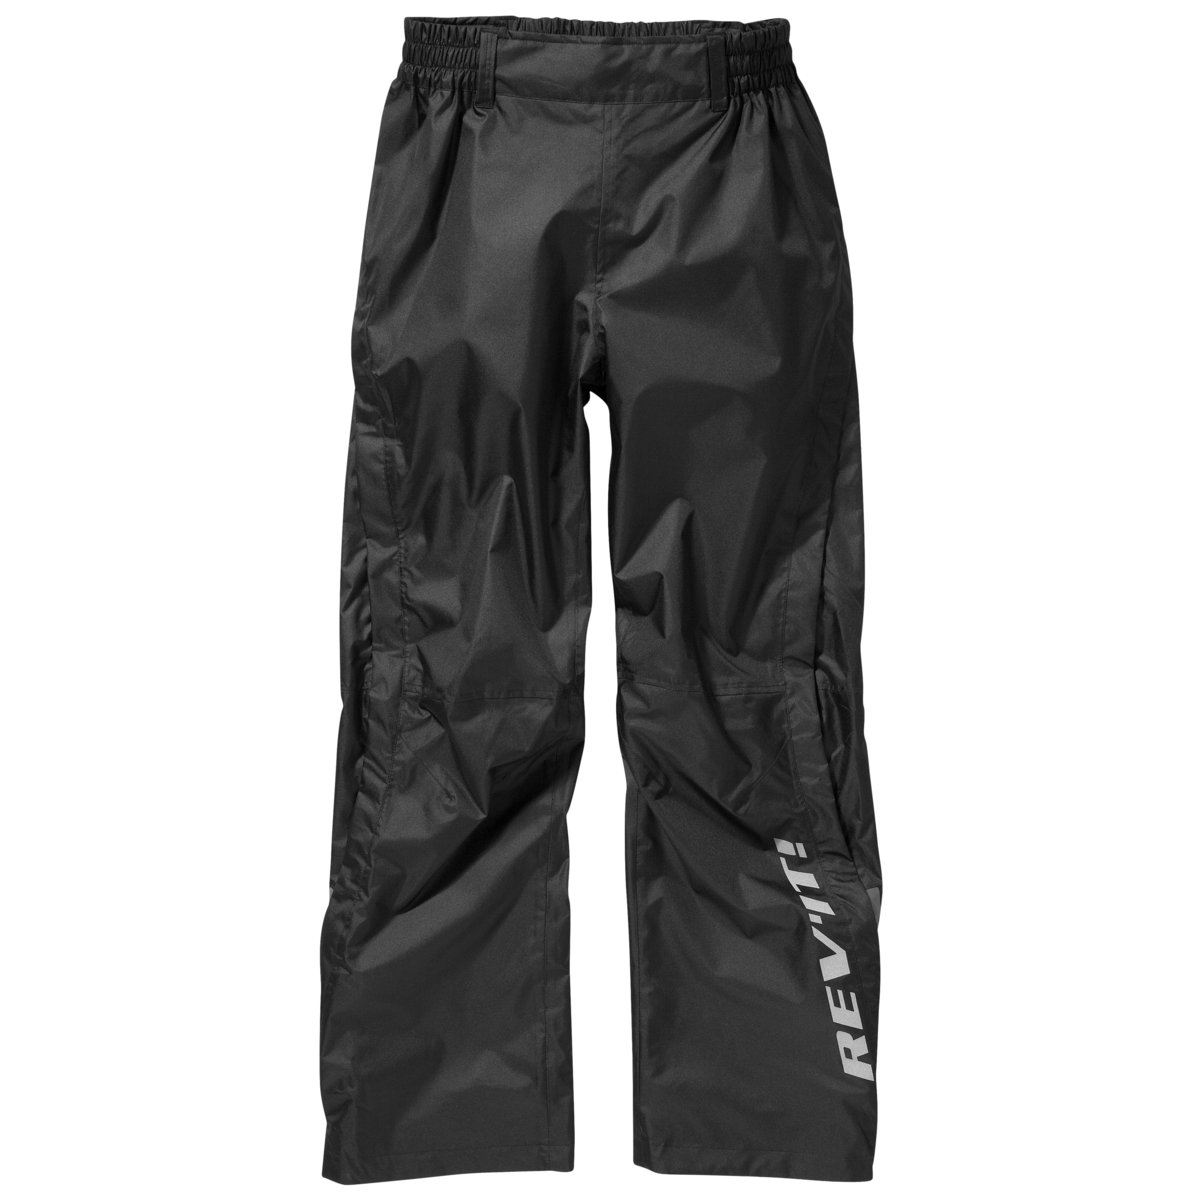 Pantaloni antipioggia Rev'it Sphinx H2O neri